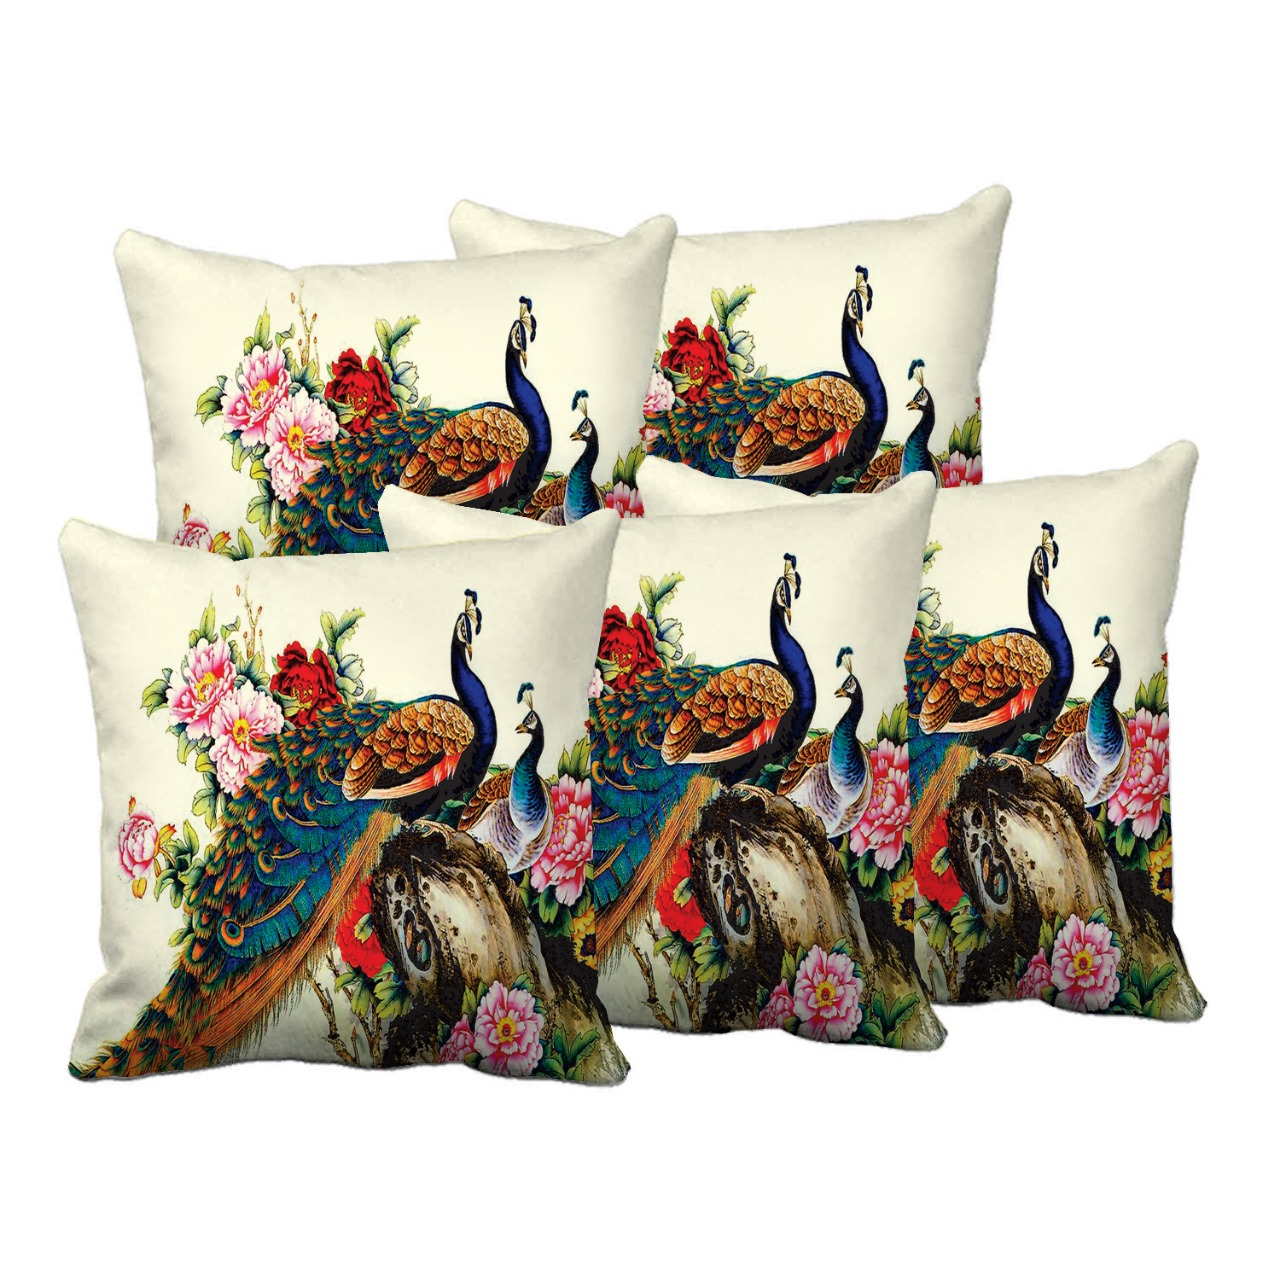 Delight Zone Digital Printed Jute Cushion Covers  Multicolour, Size 16 Inch x 16 Inch    Set of 5